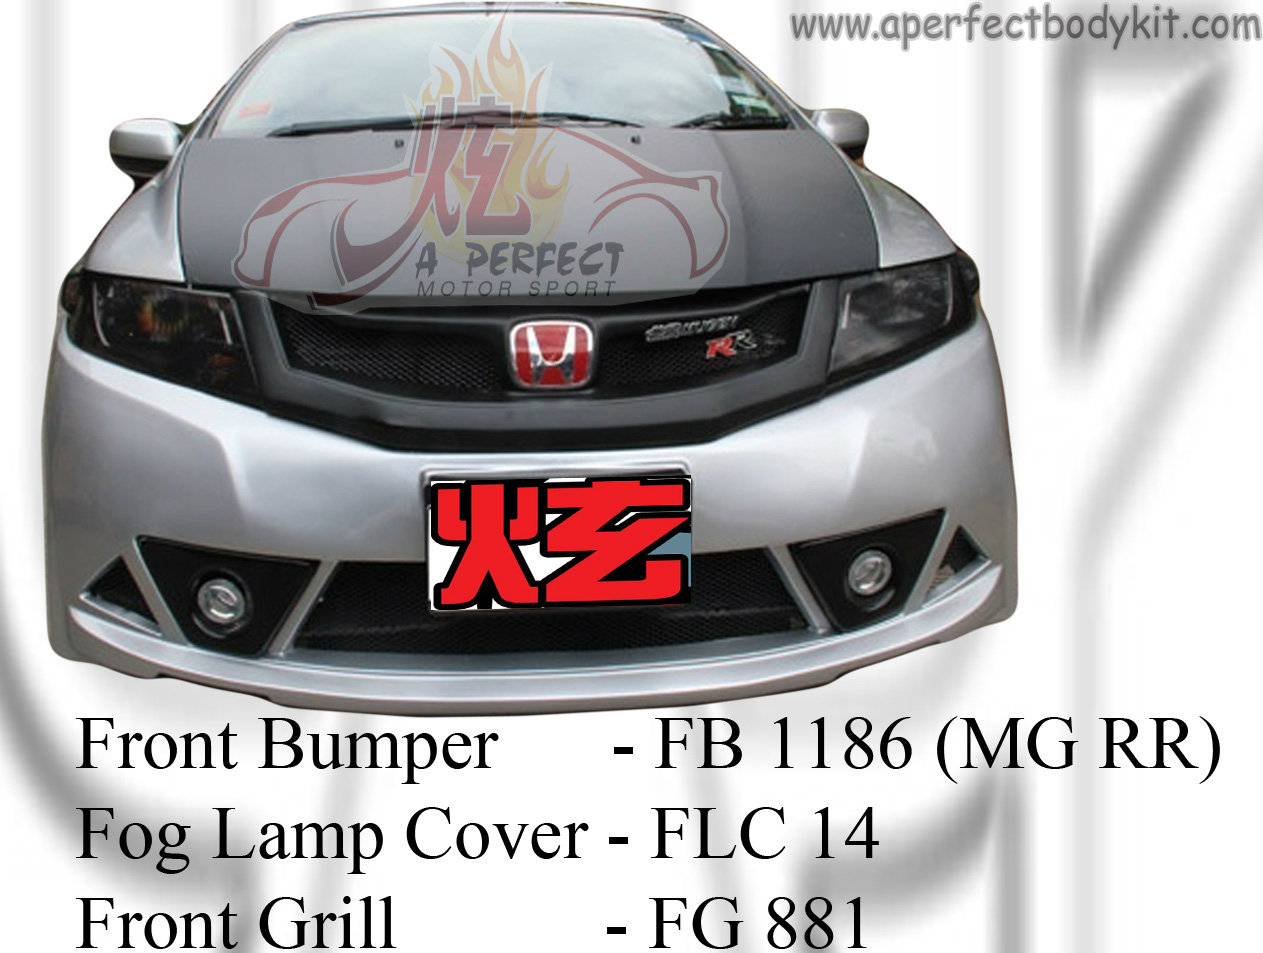 Honda City 2008 MG RR Front Bumper